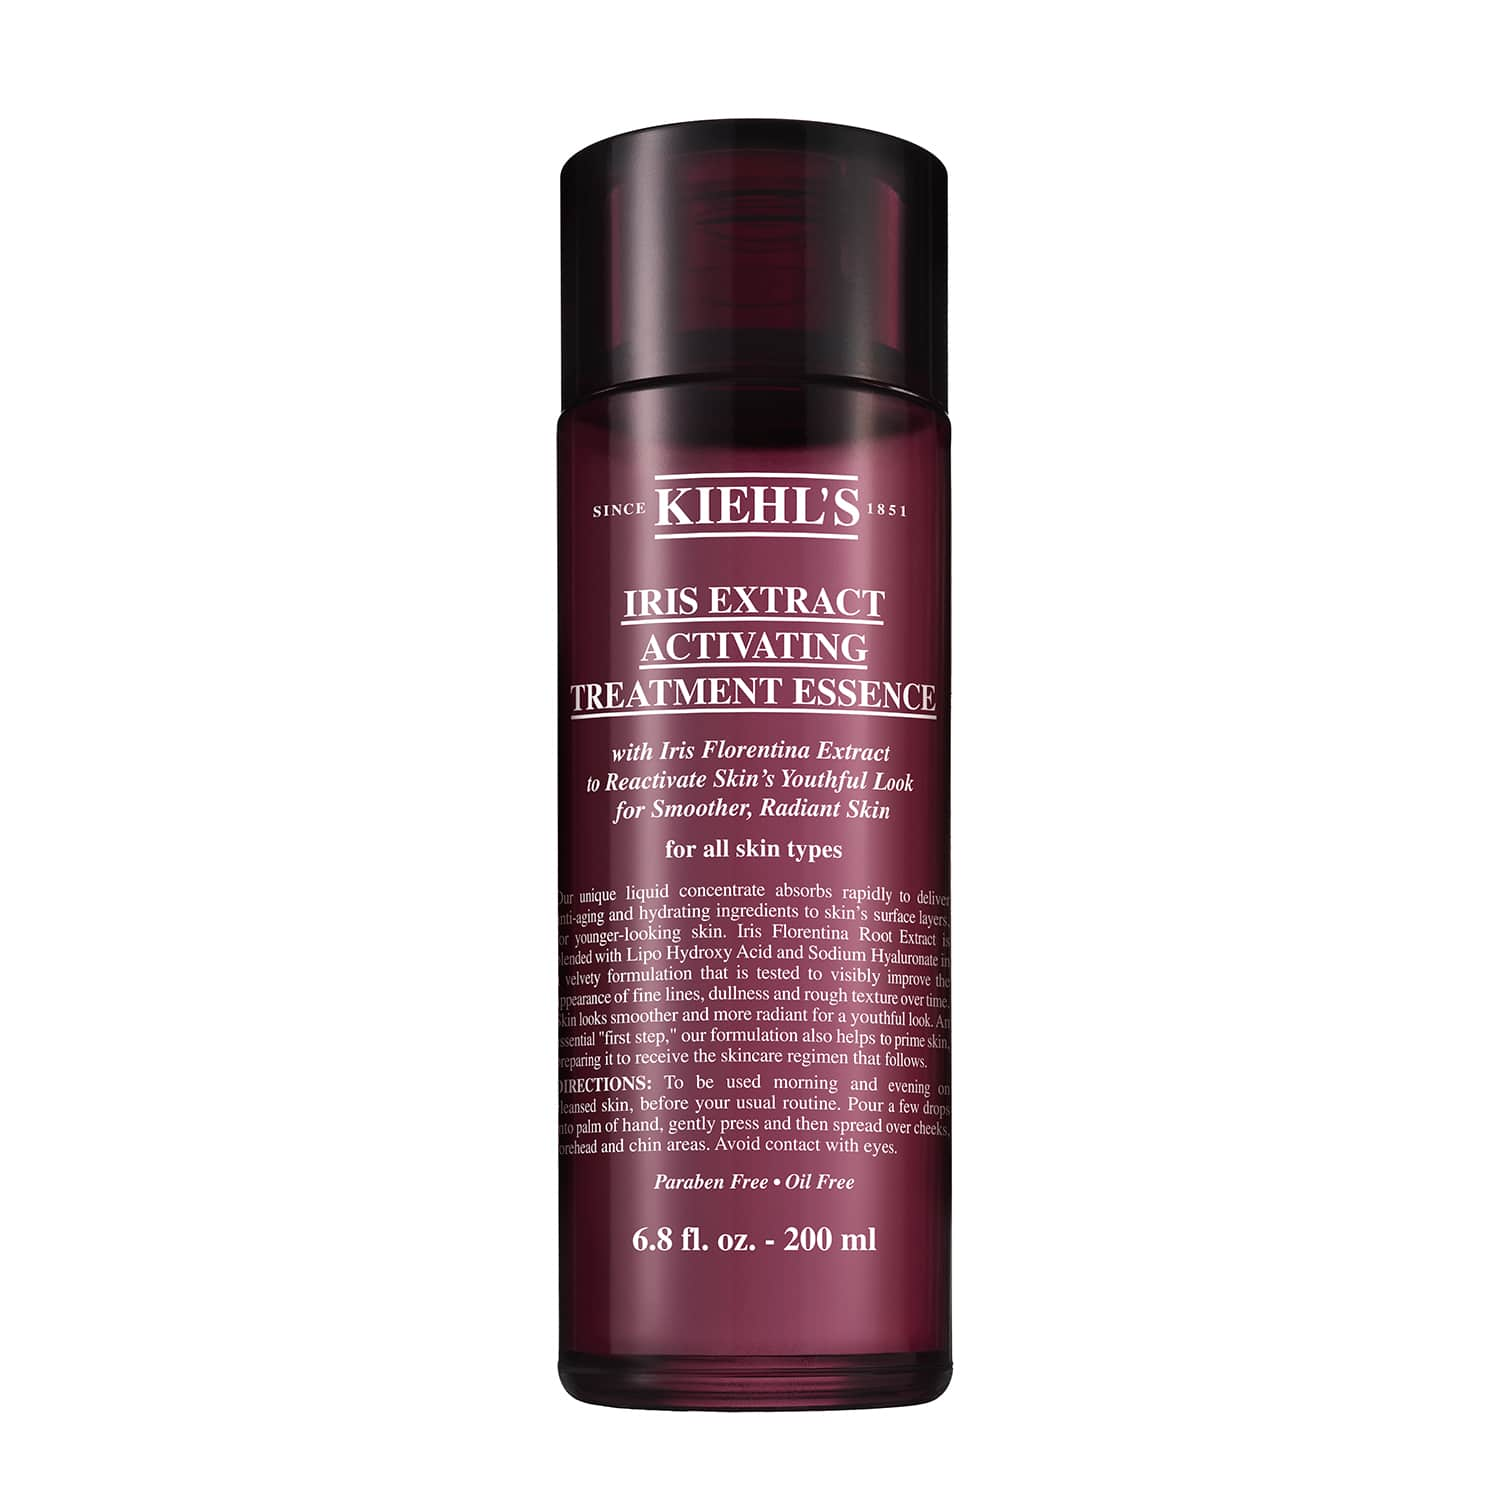 nuoc than chong lao hoa kiehls iris extract activating treatment essence